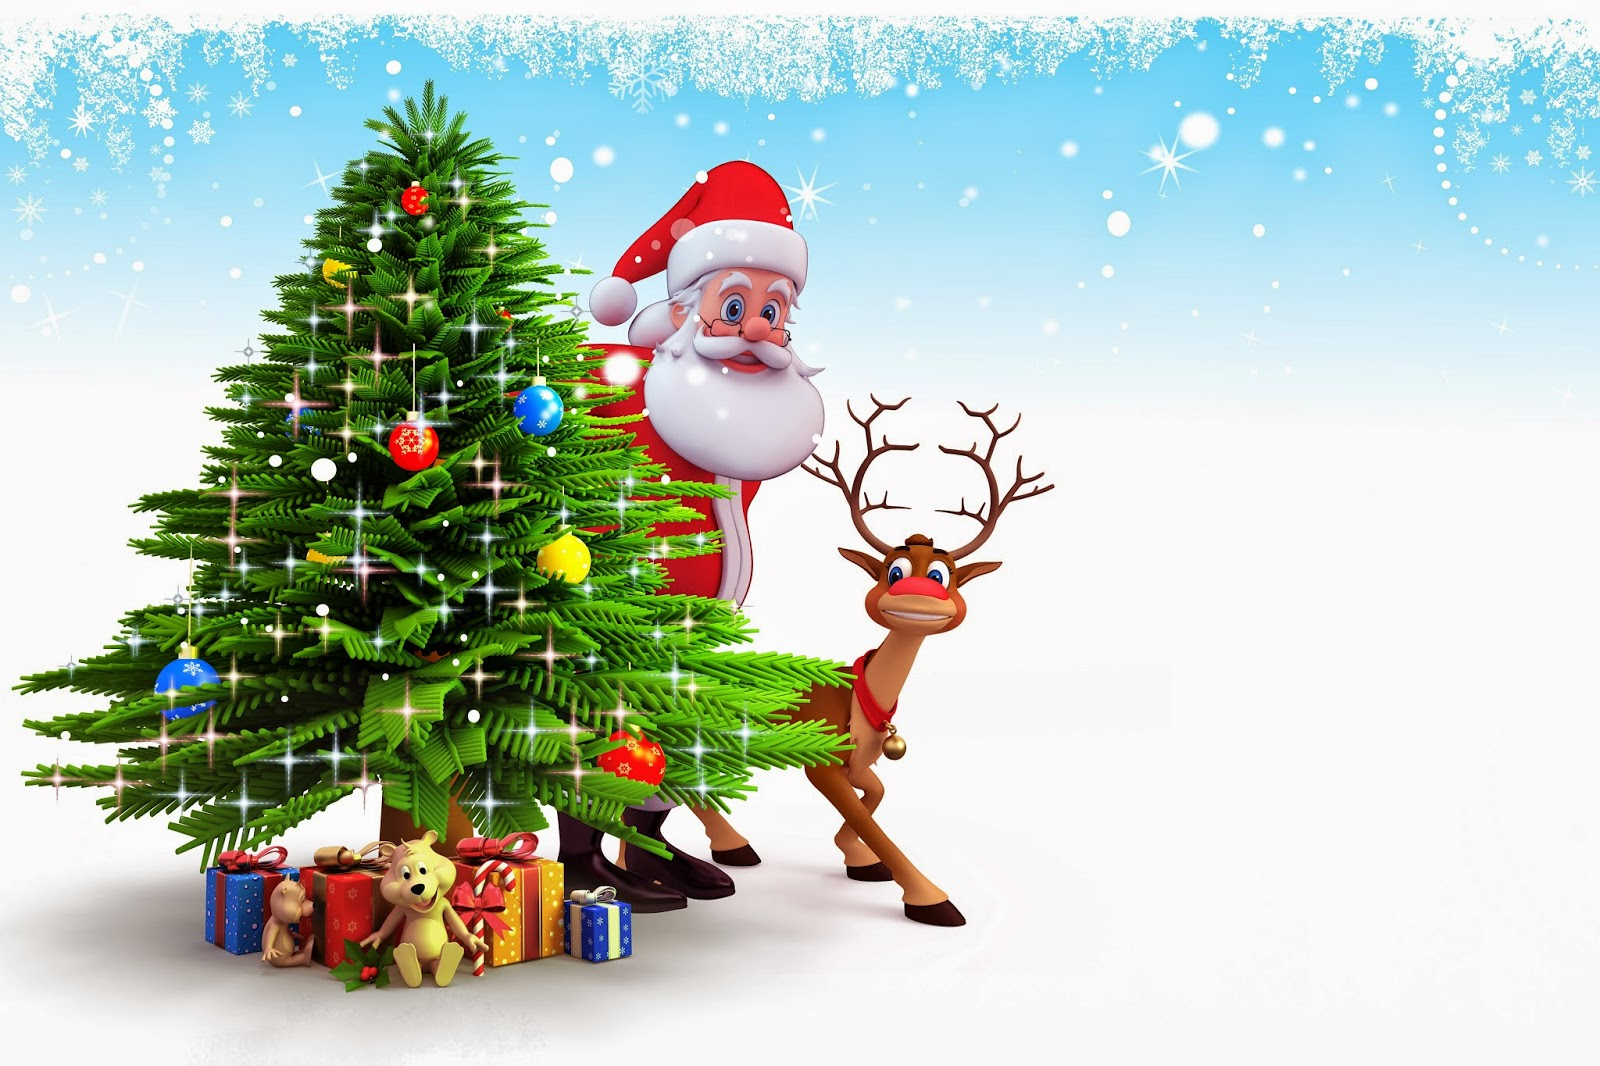 Christmas-3d-animation-Santa-hidden-behind-tree-wallpaper-image-for-children-kids-6496x4331.jpg